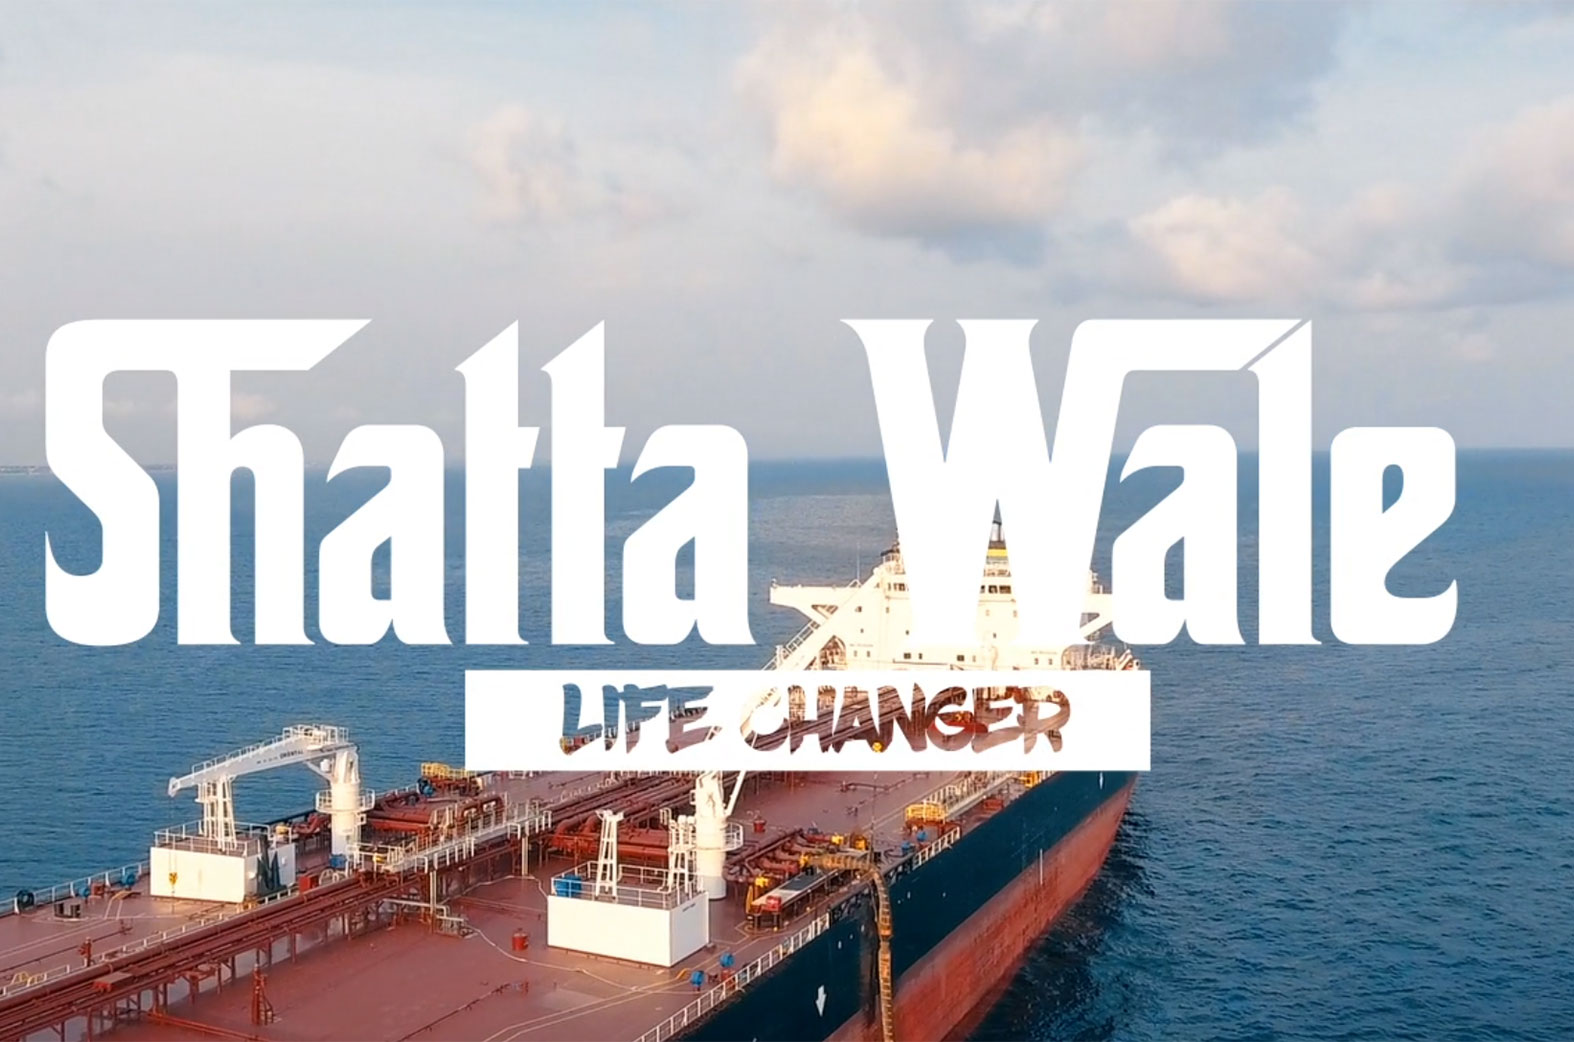 Life Changer by Shatta Wale